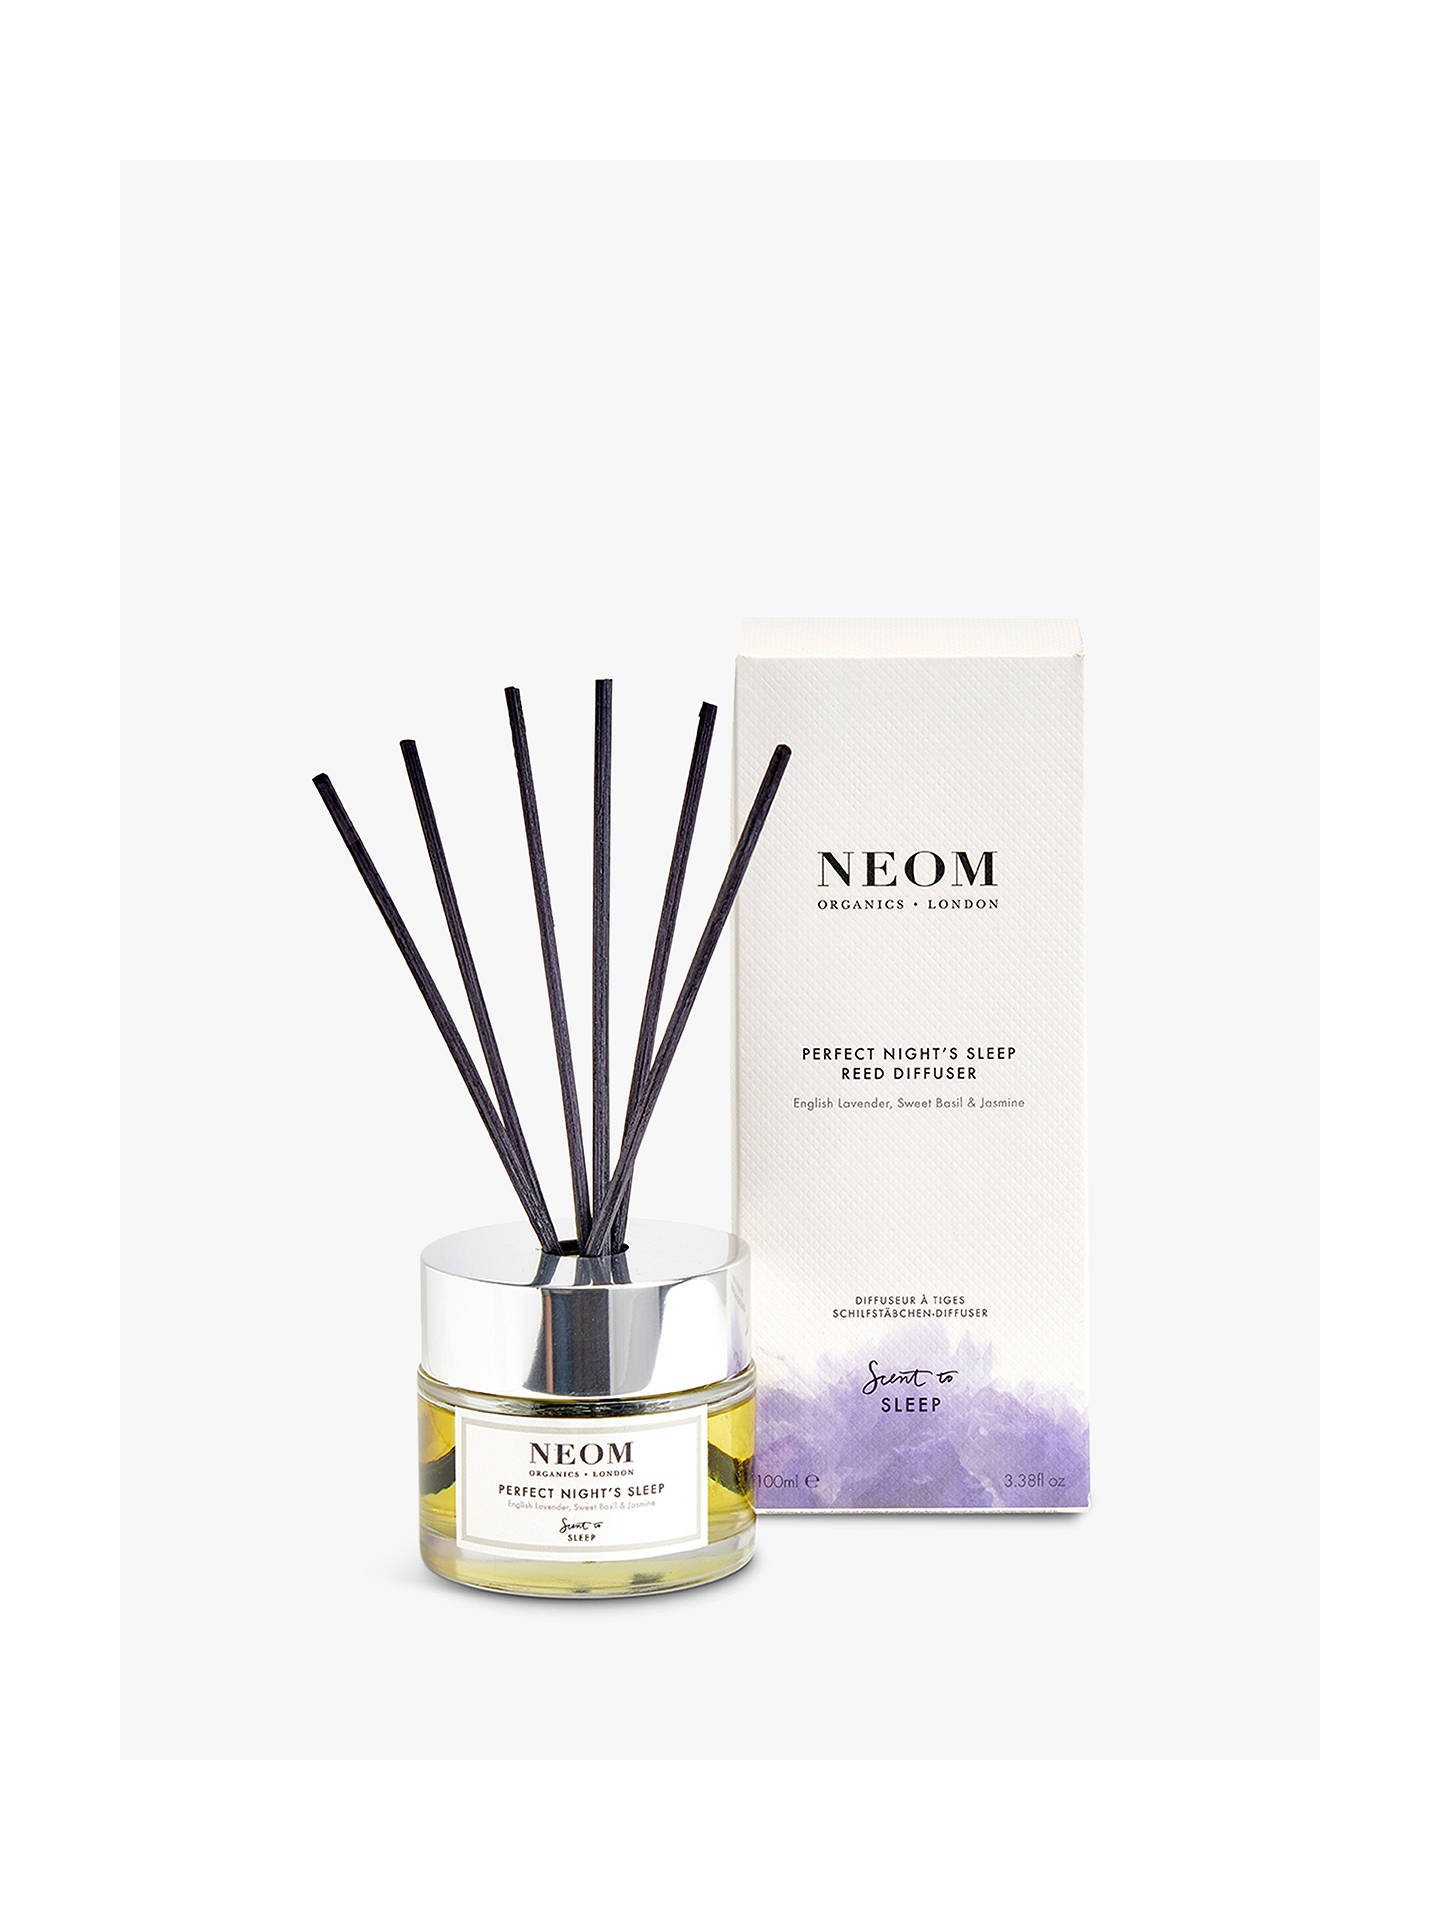 BuyNeom Organics London Tranquility Diffuser, 100ml Online at johnlewis.com